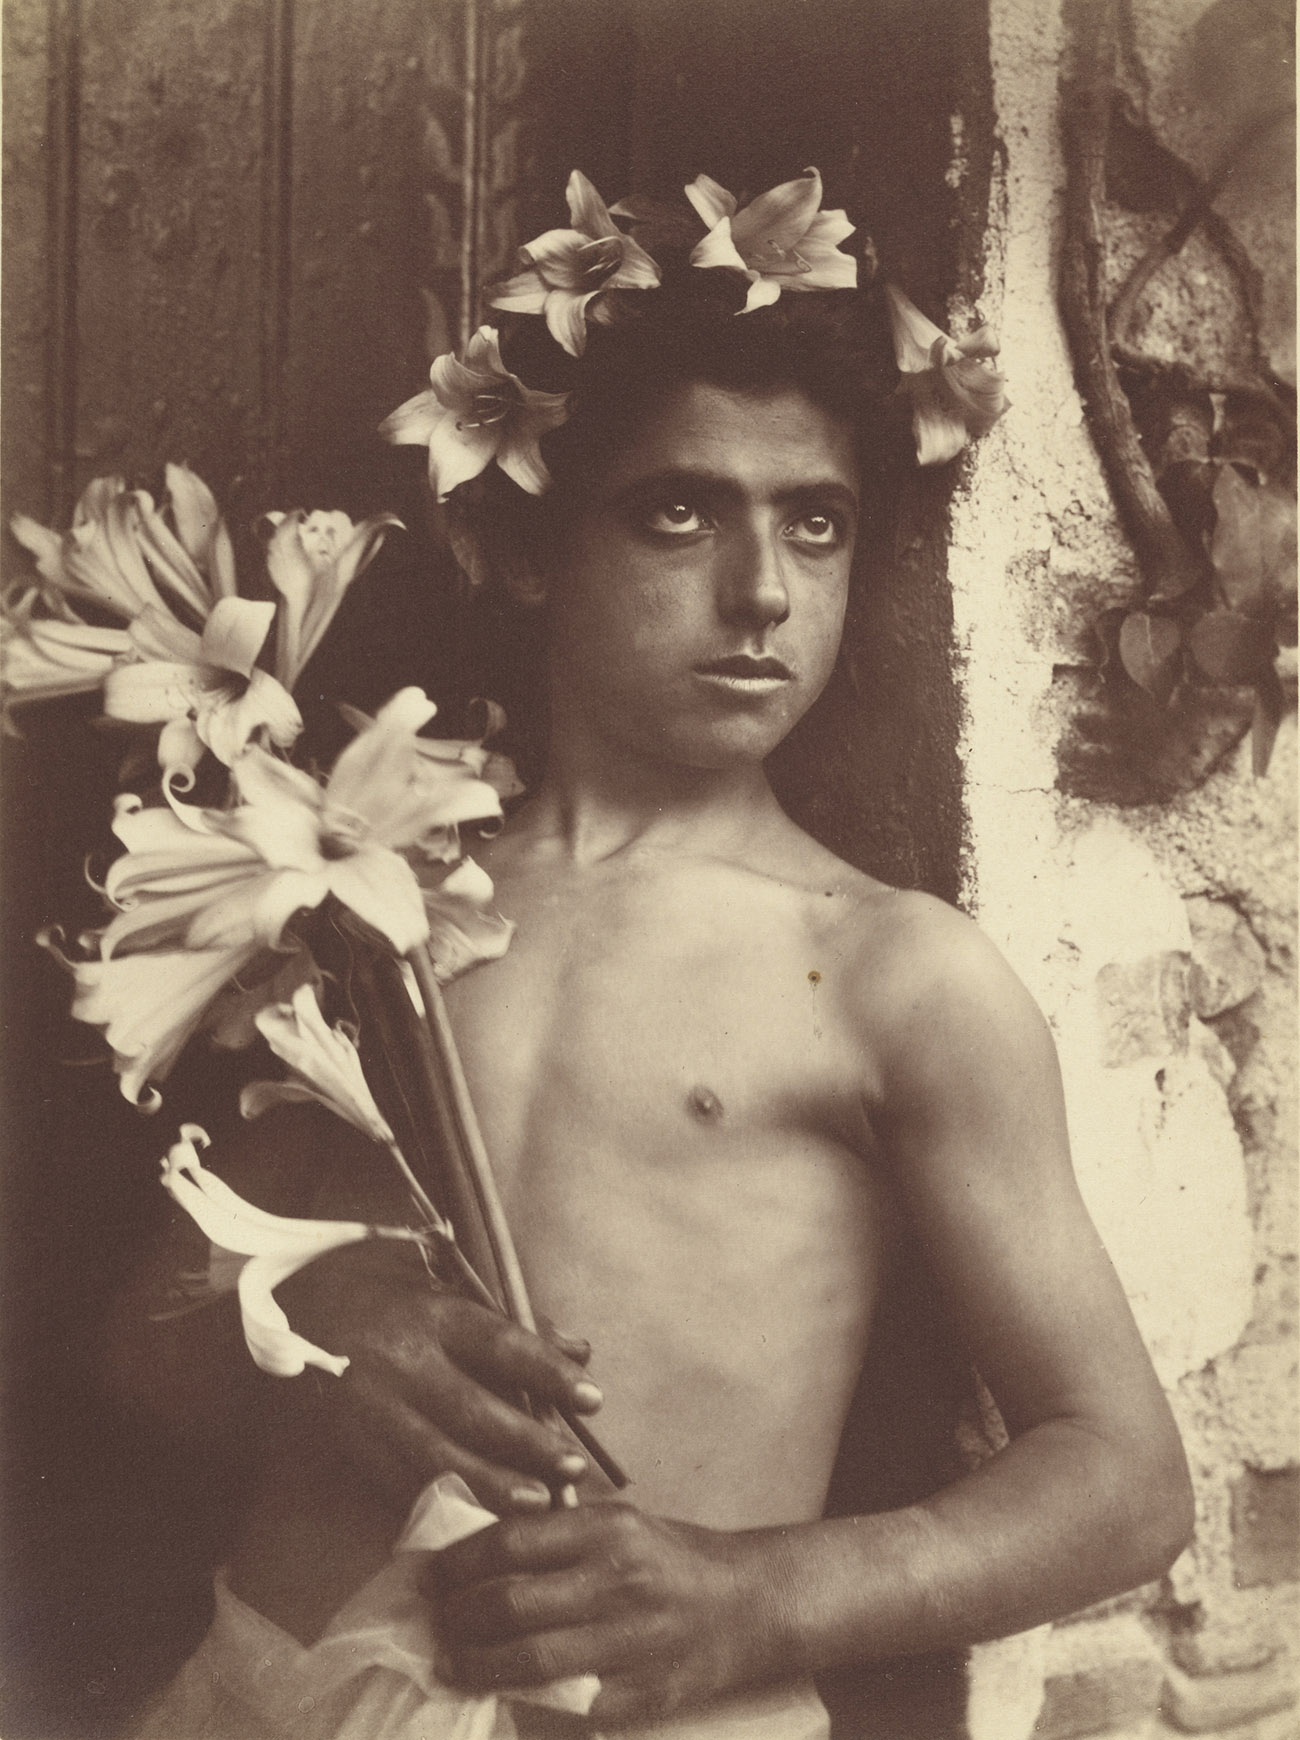 Boy with Lillies / von Gloeden